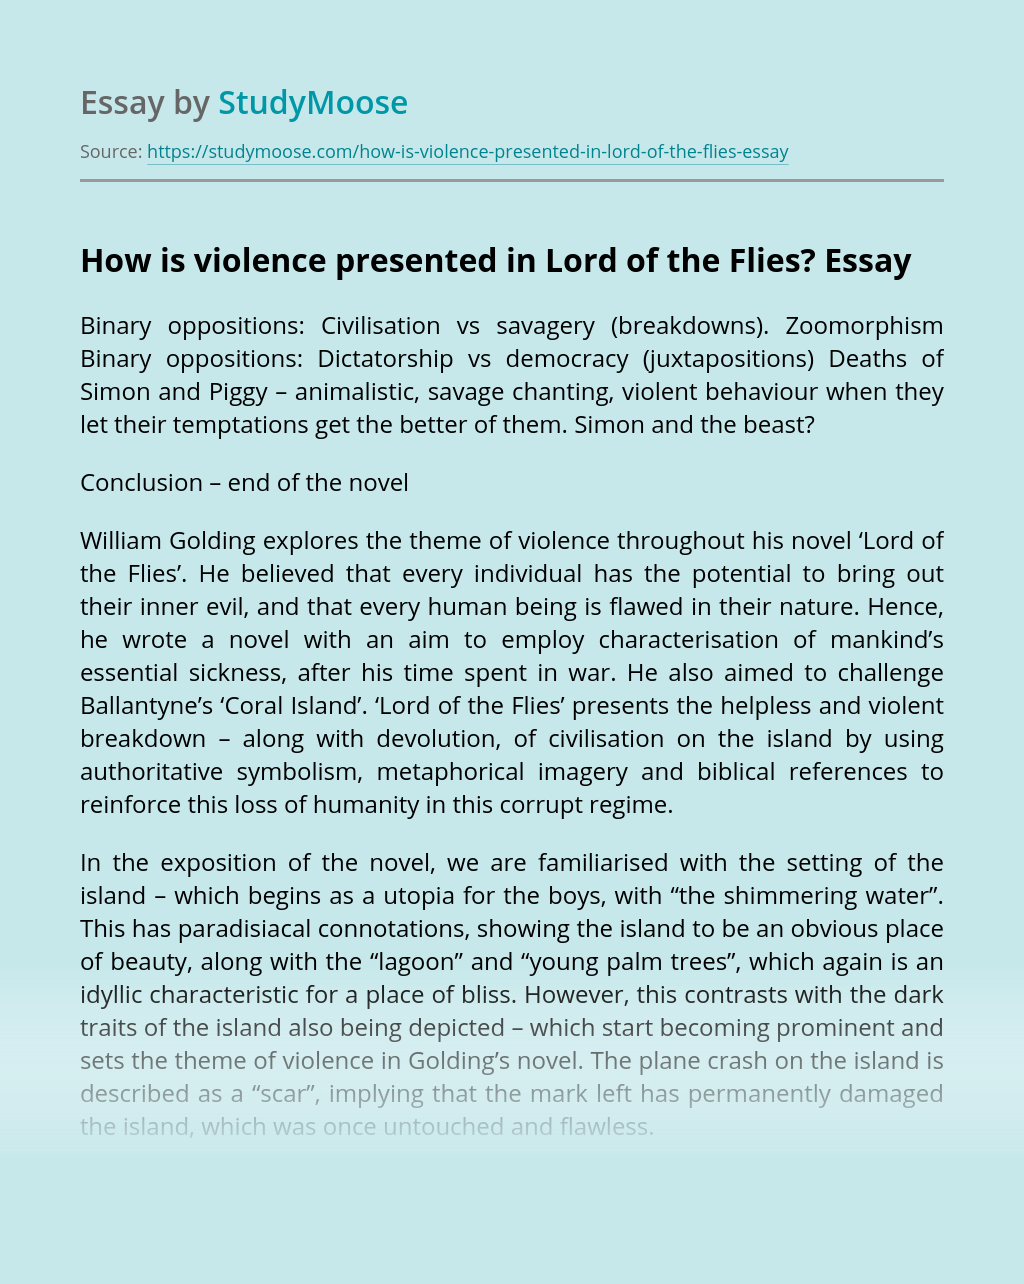 ?How is violence presented in Lord of the Flies?